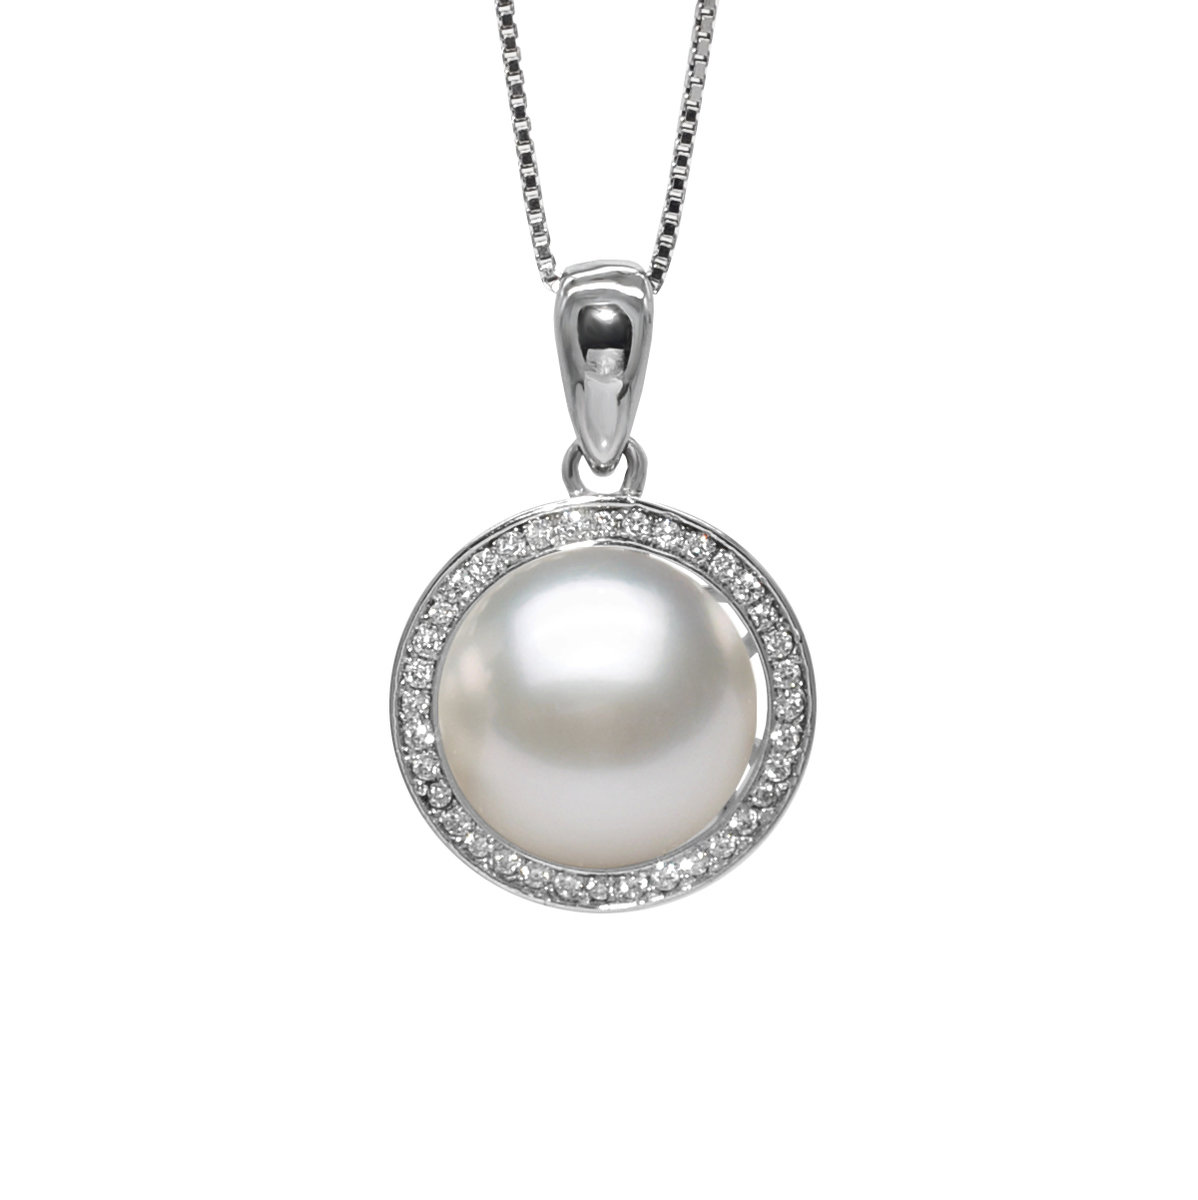 Sunset- 10-11mm Cultured fresh water pearl with cz mounted 925 silver pendant